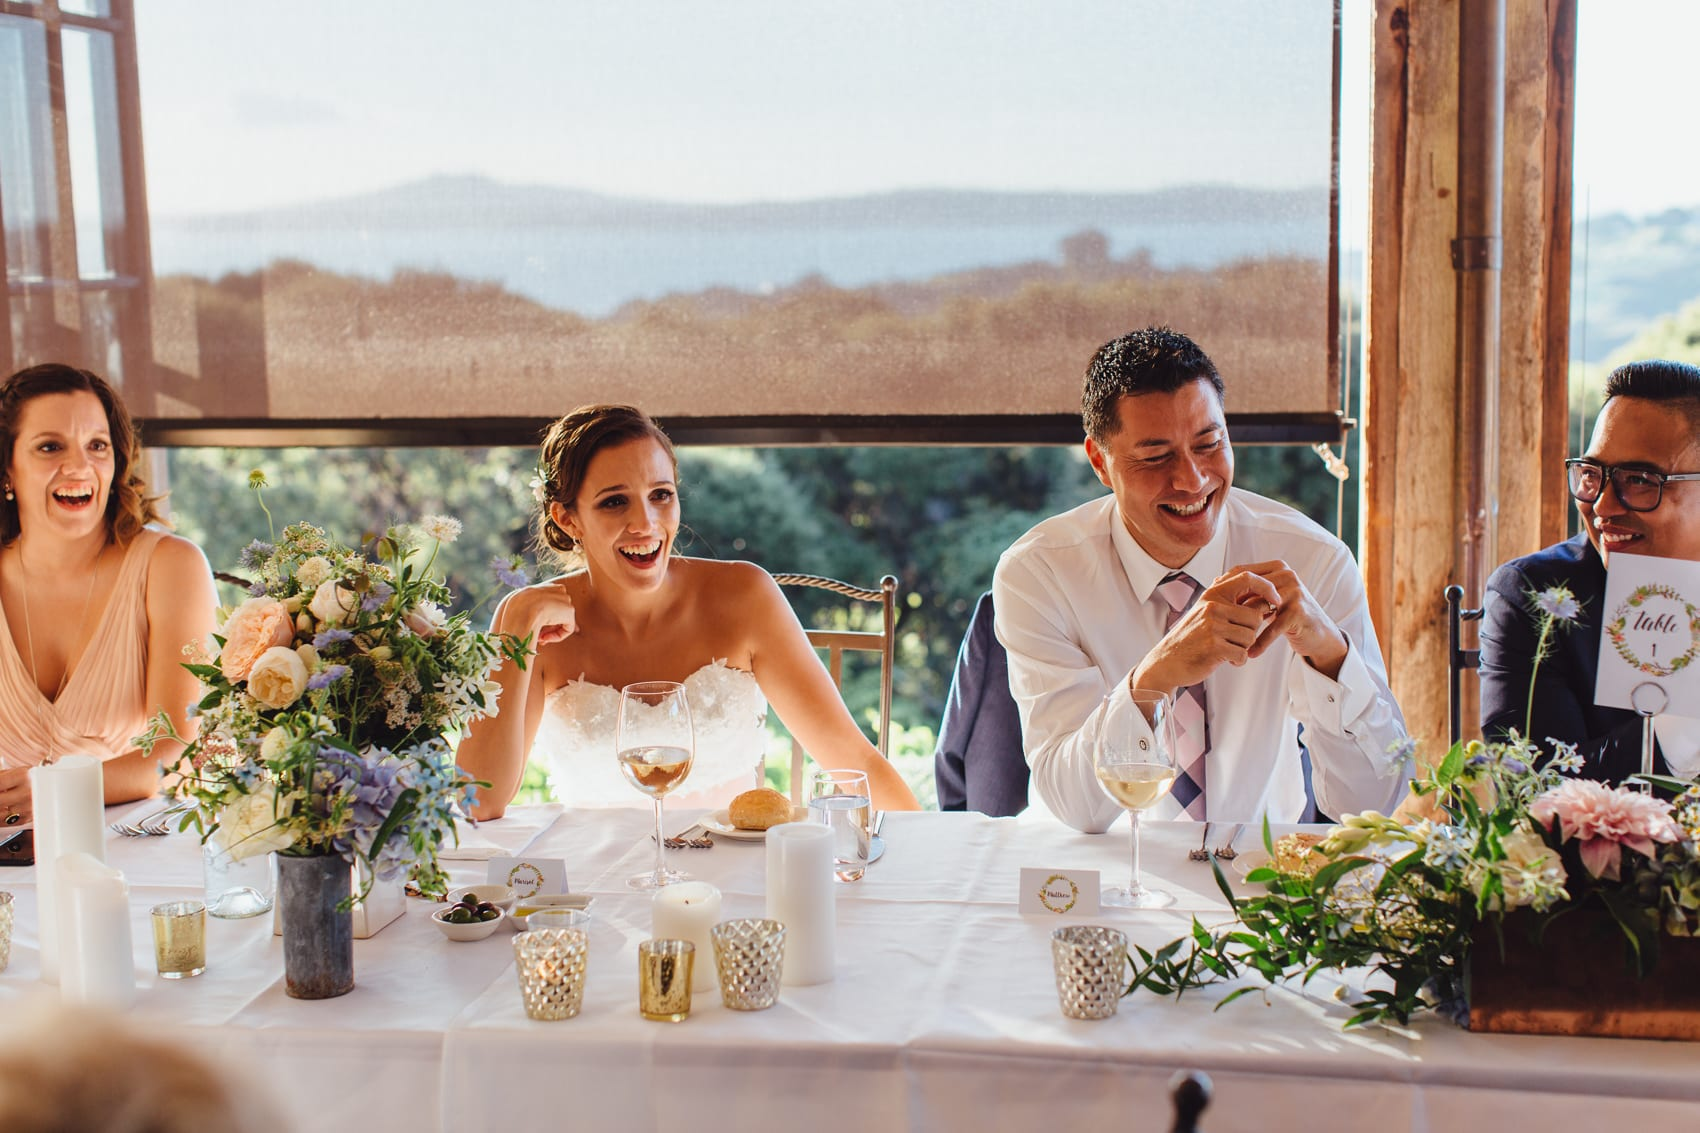 wedding_waiheke_elin_bandmann_photography-19